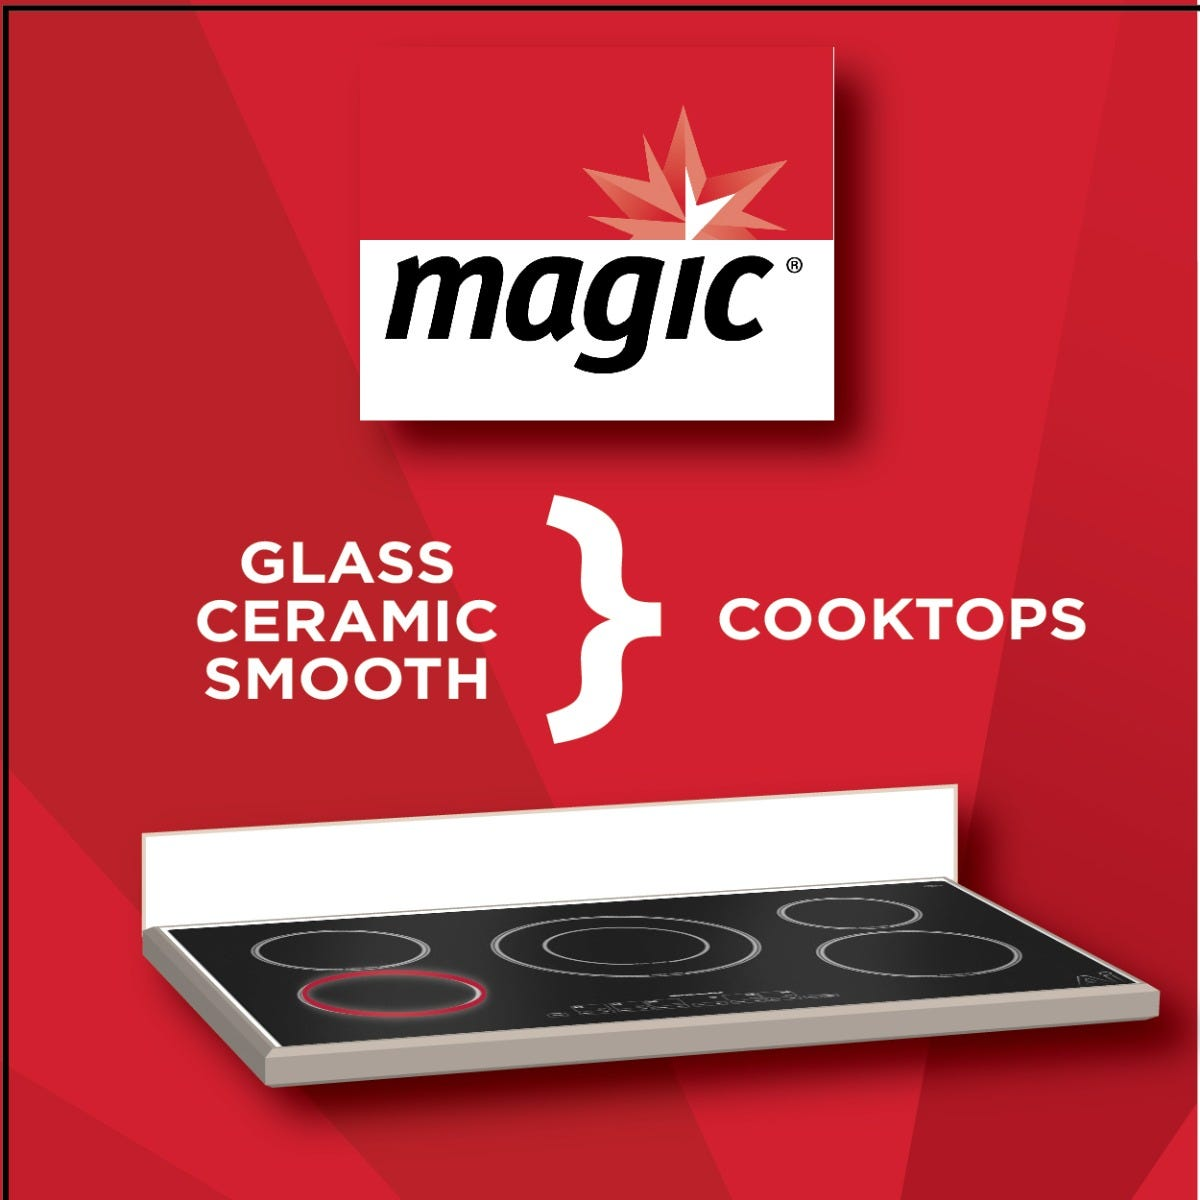 Magic Cooktop Cleaner Uses